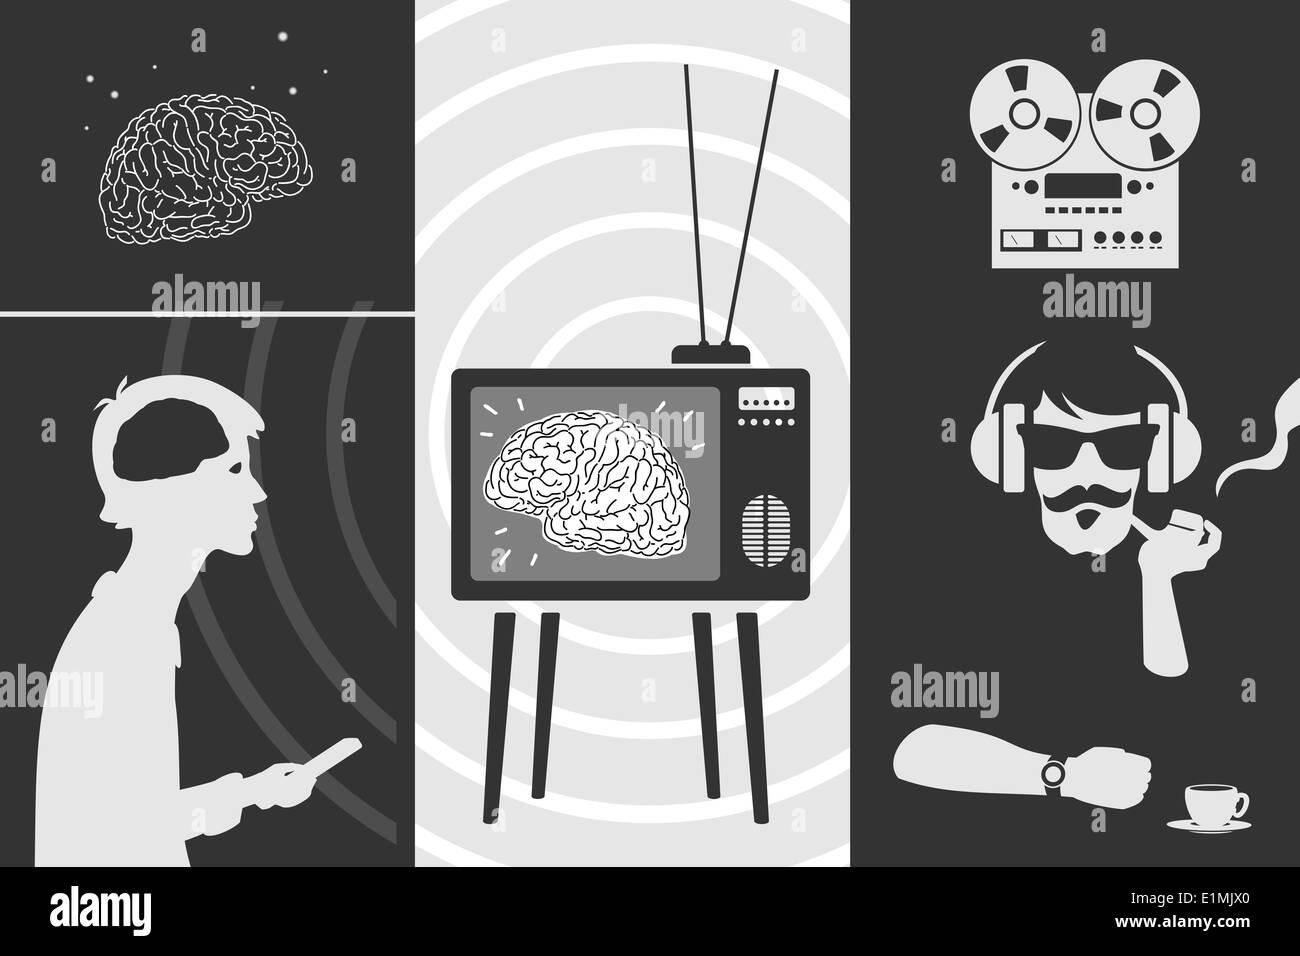 Set propaganda - Stock Image